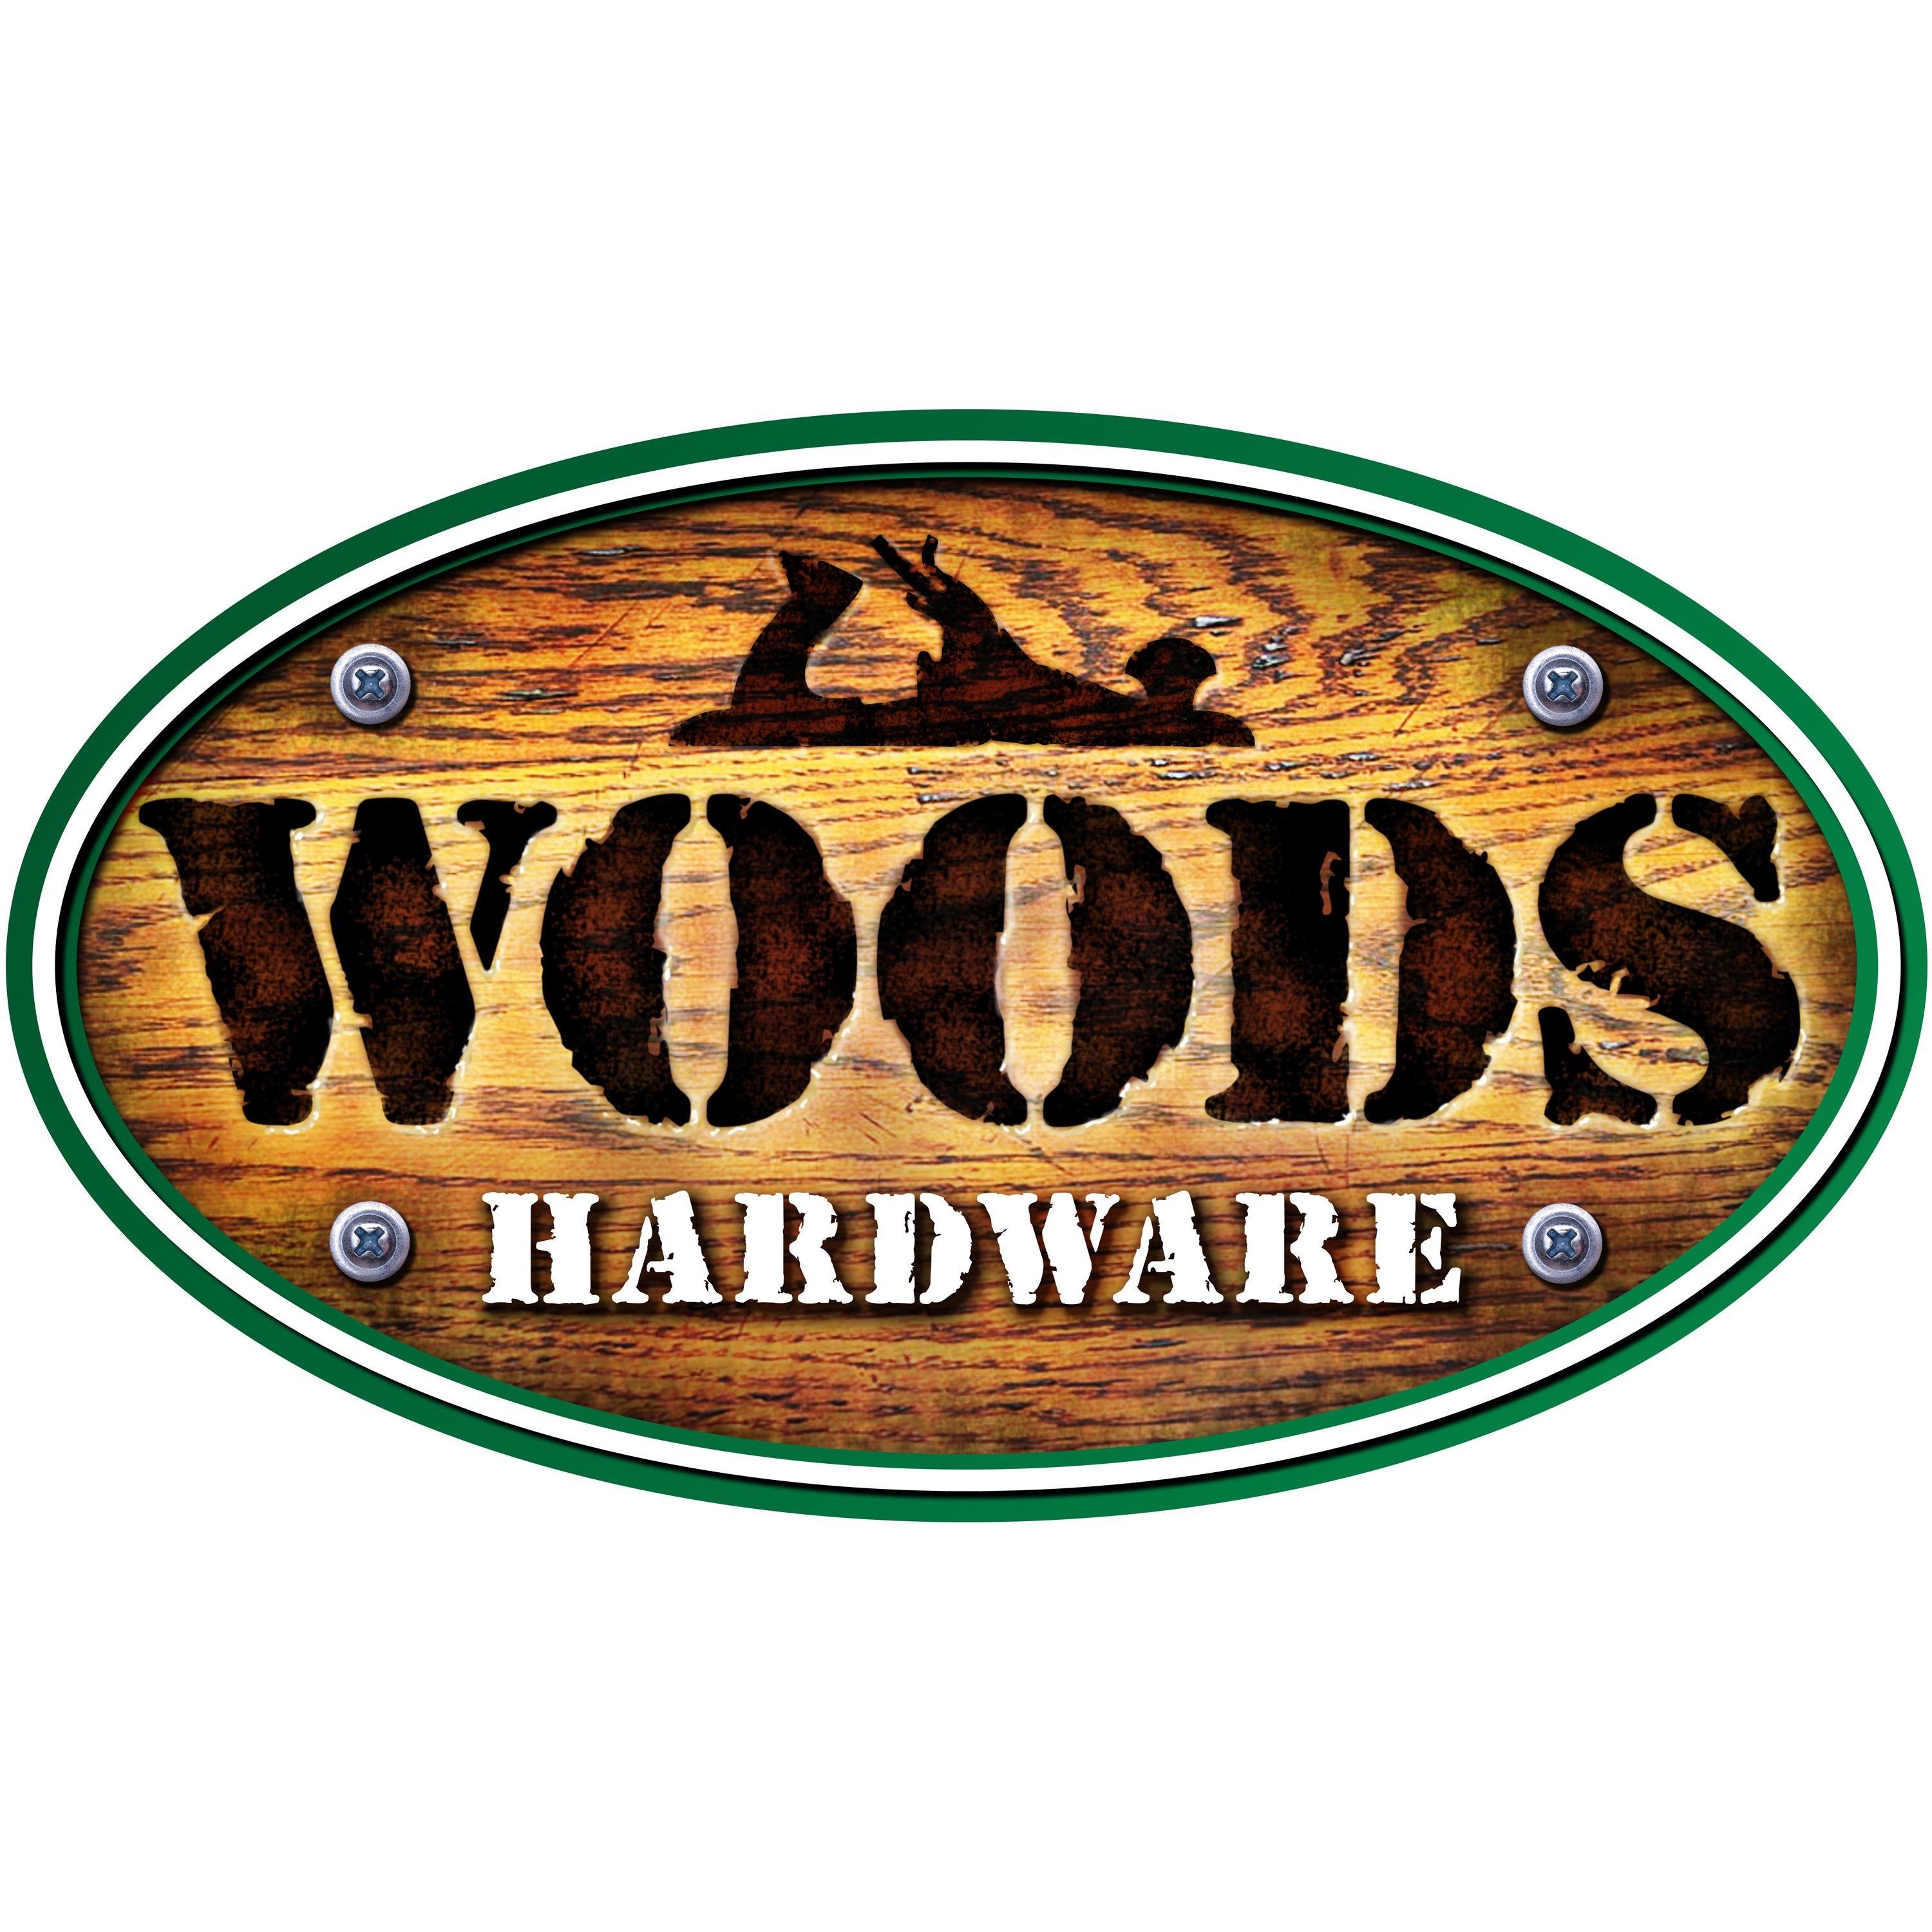 Woods Hardware of Roselawn